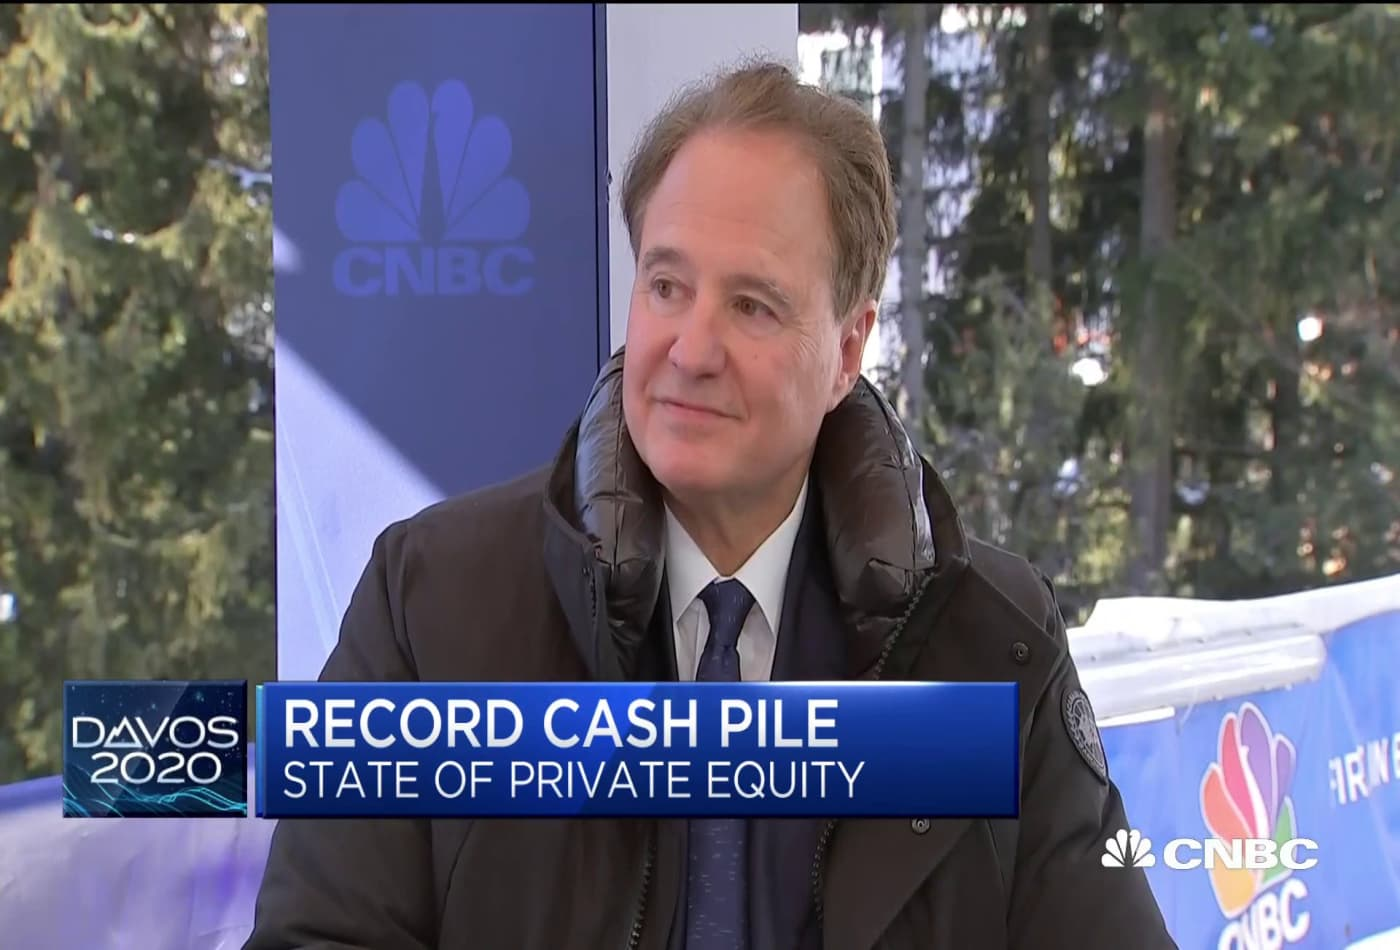 Bain Capital CEO Stephen Pagliuca on the state of private equity